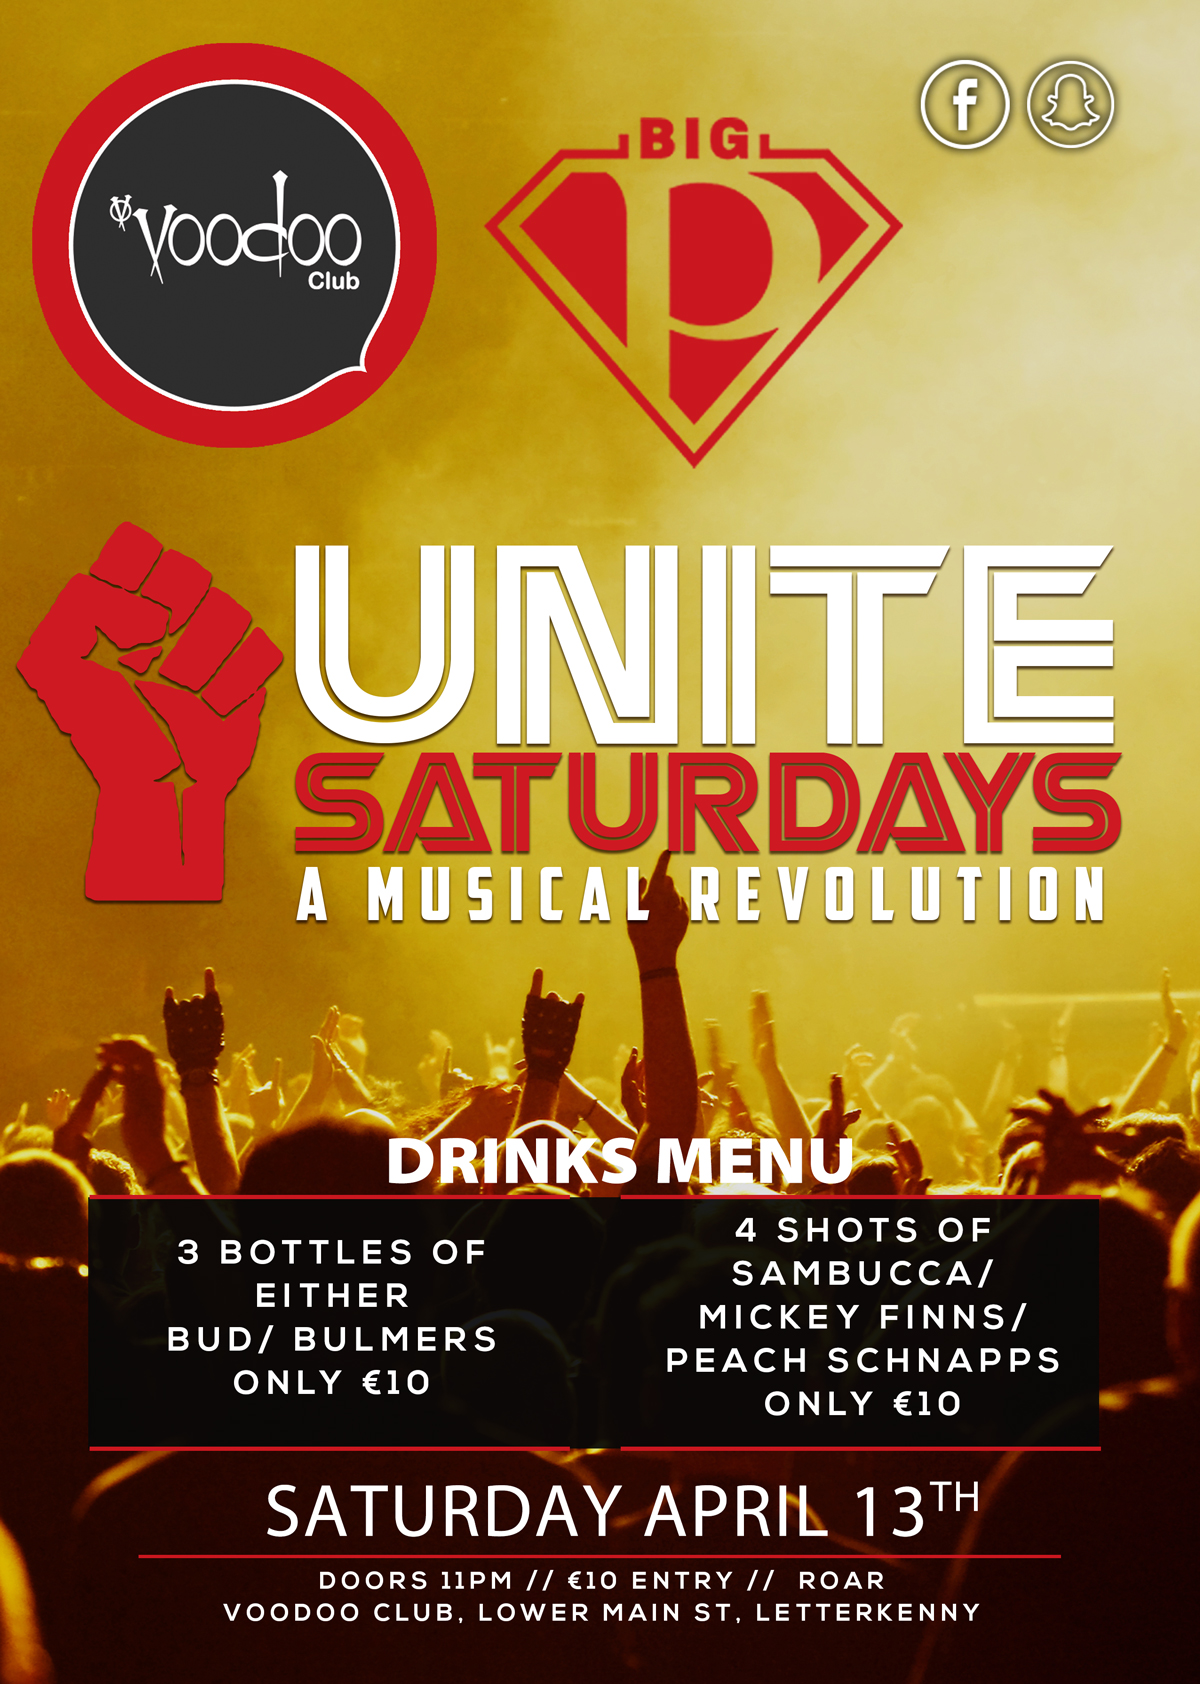 voodoo-venue---unite-saturdays-sat-paril-13-2019.jpg